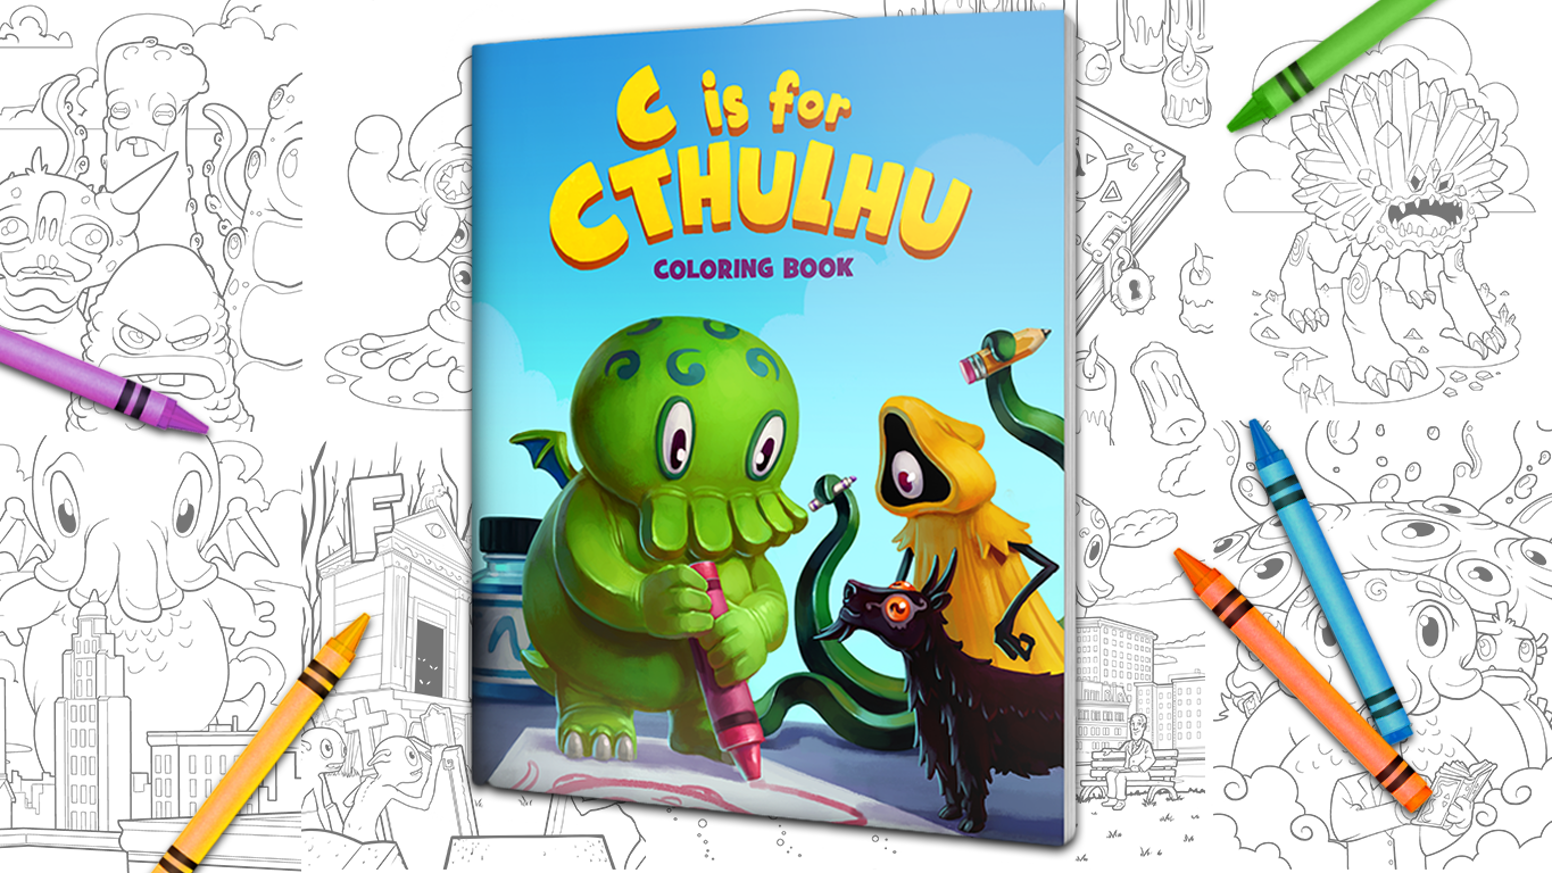 C is for Cthulhu Coloring Book by Jason Ciaramella & Greg Murphy ...